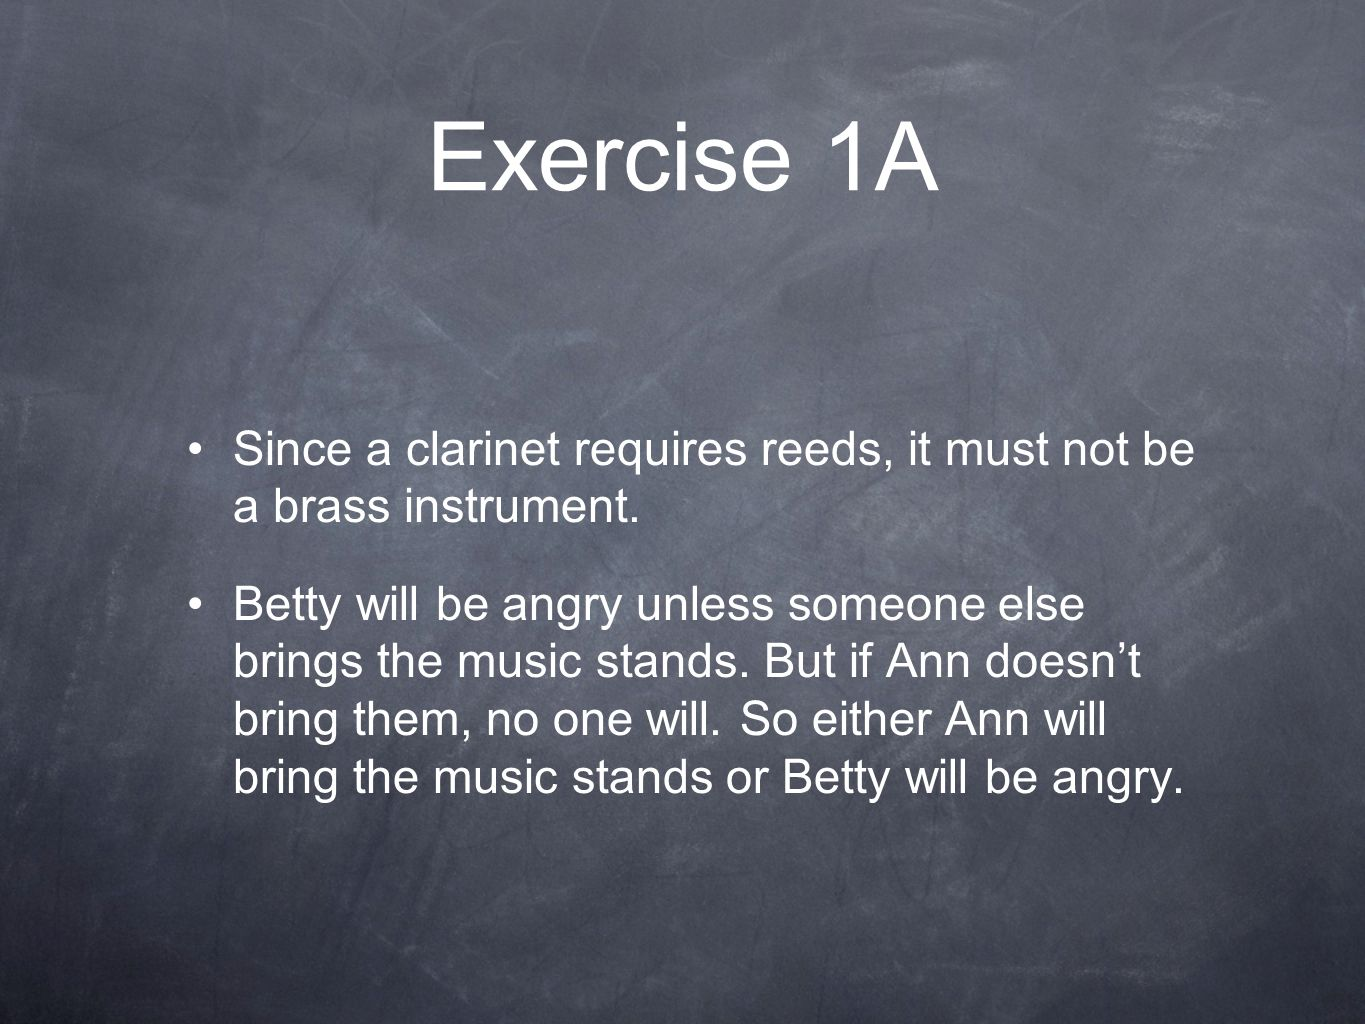 Exercise 1A Since a clarinet requires reeds, it must not be a brass instrument.